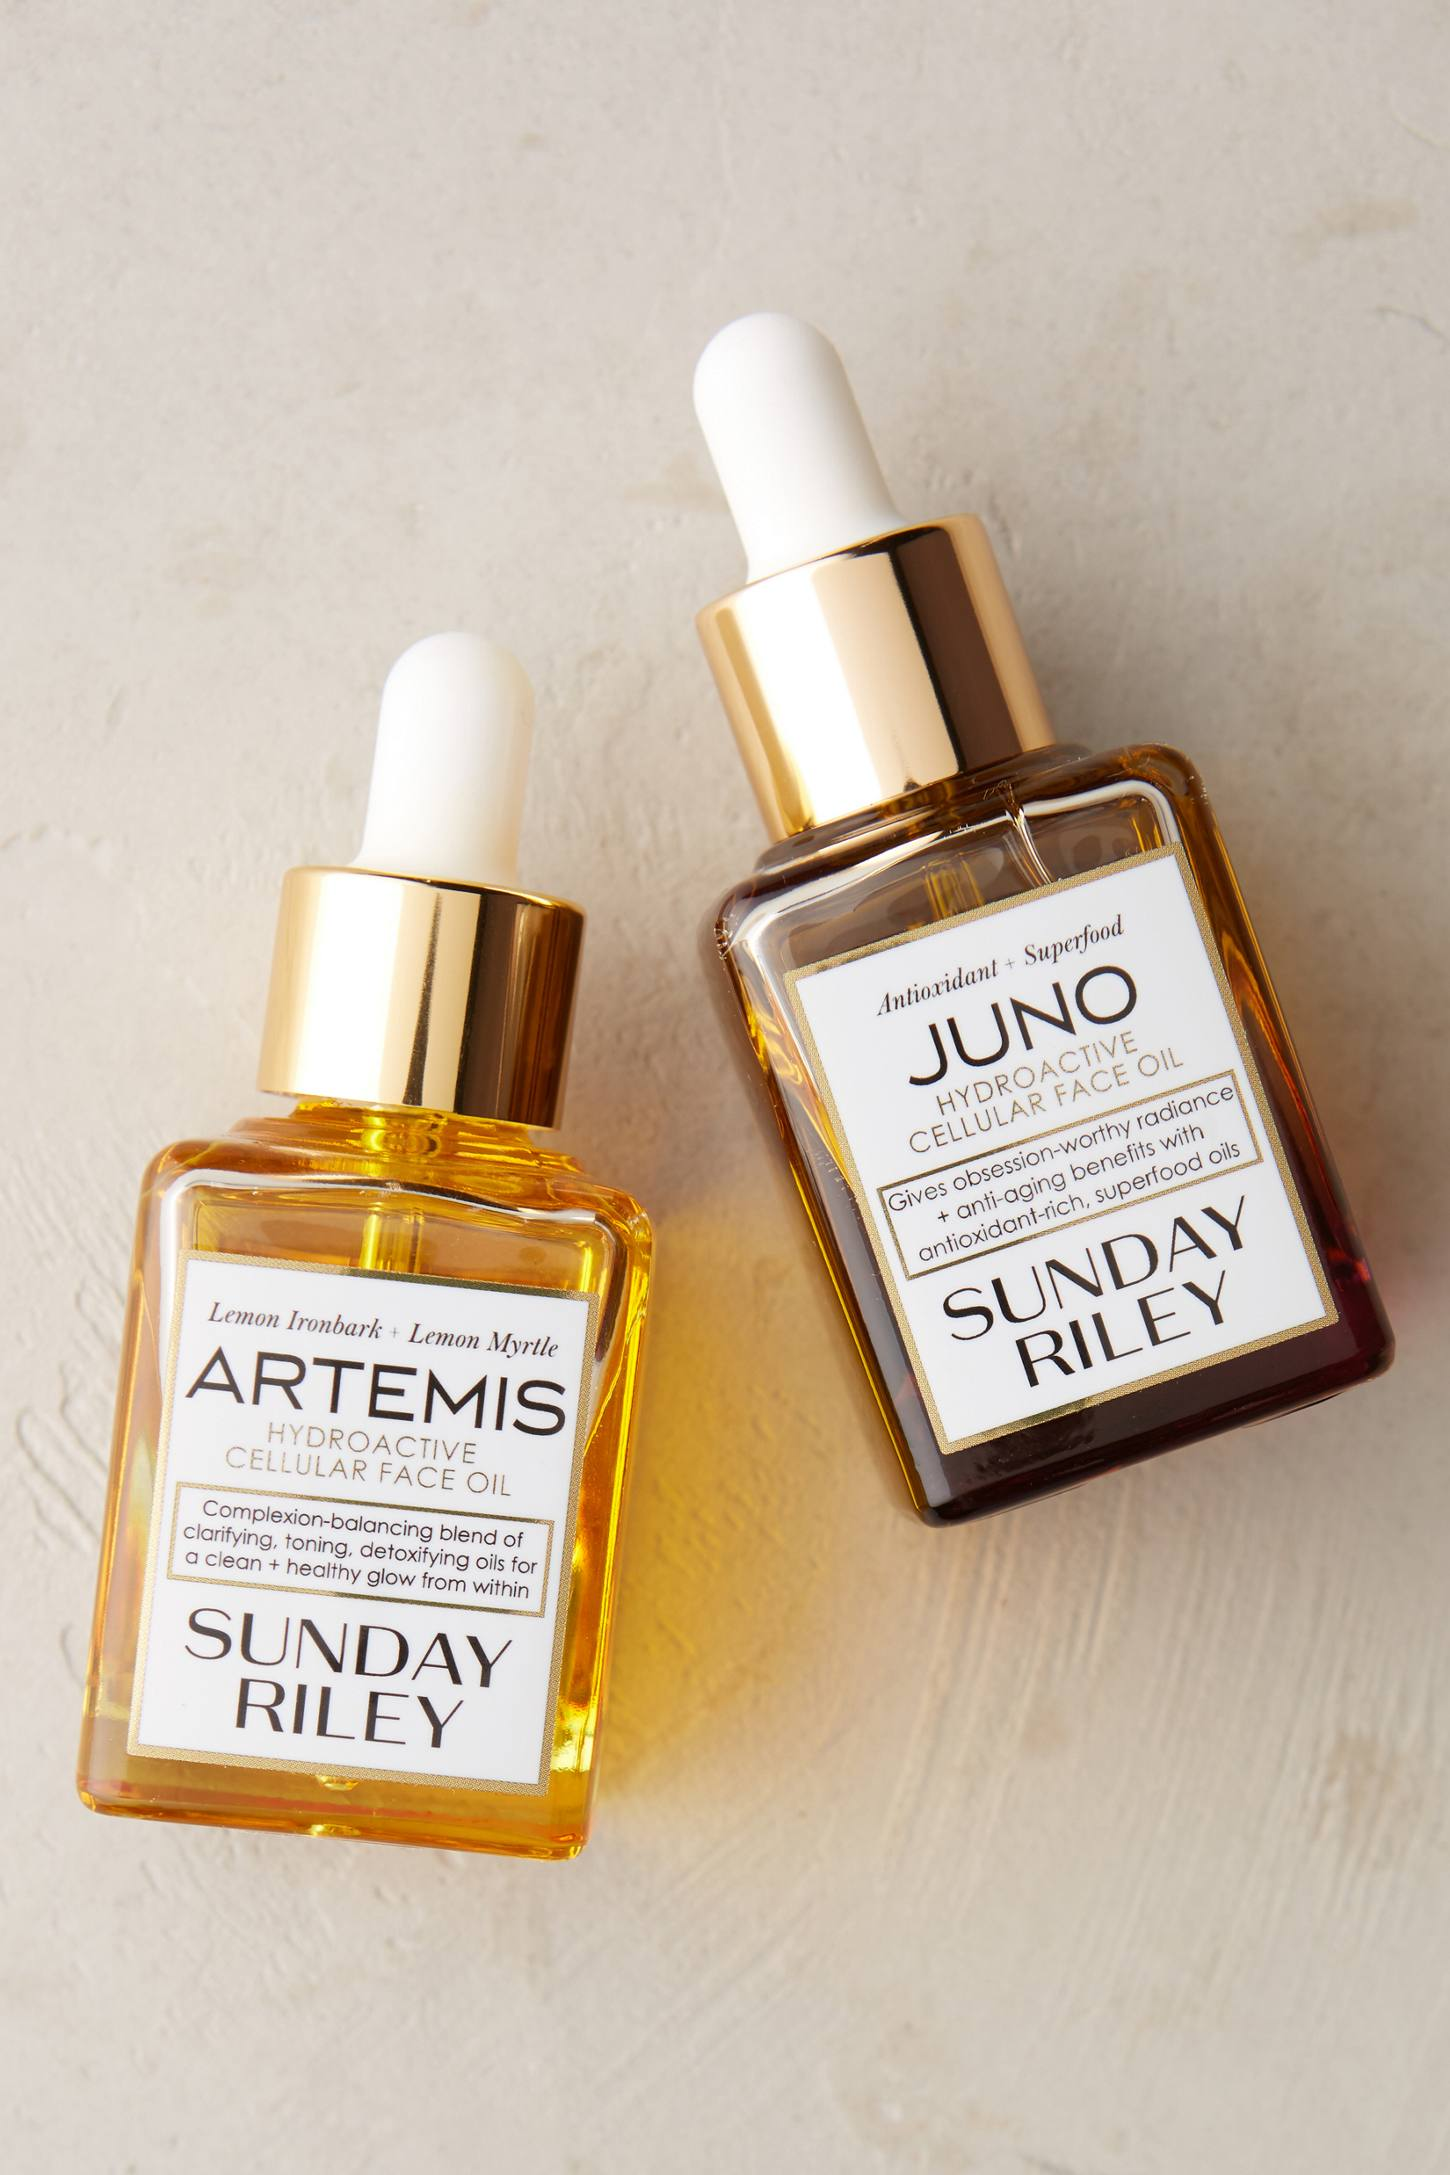 Slide View: 2: Sunday Riley Juno Hydroactive Cellular Face Oil